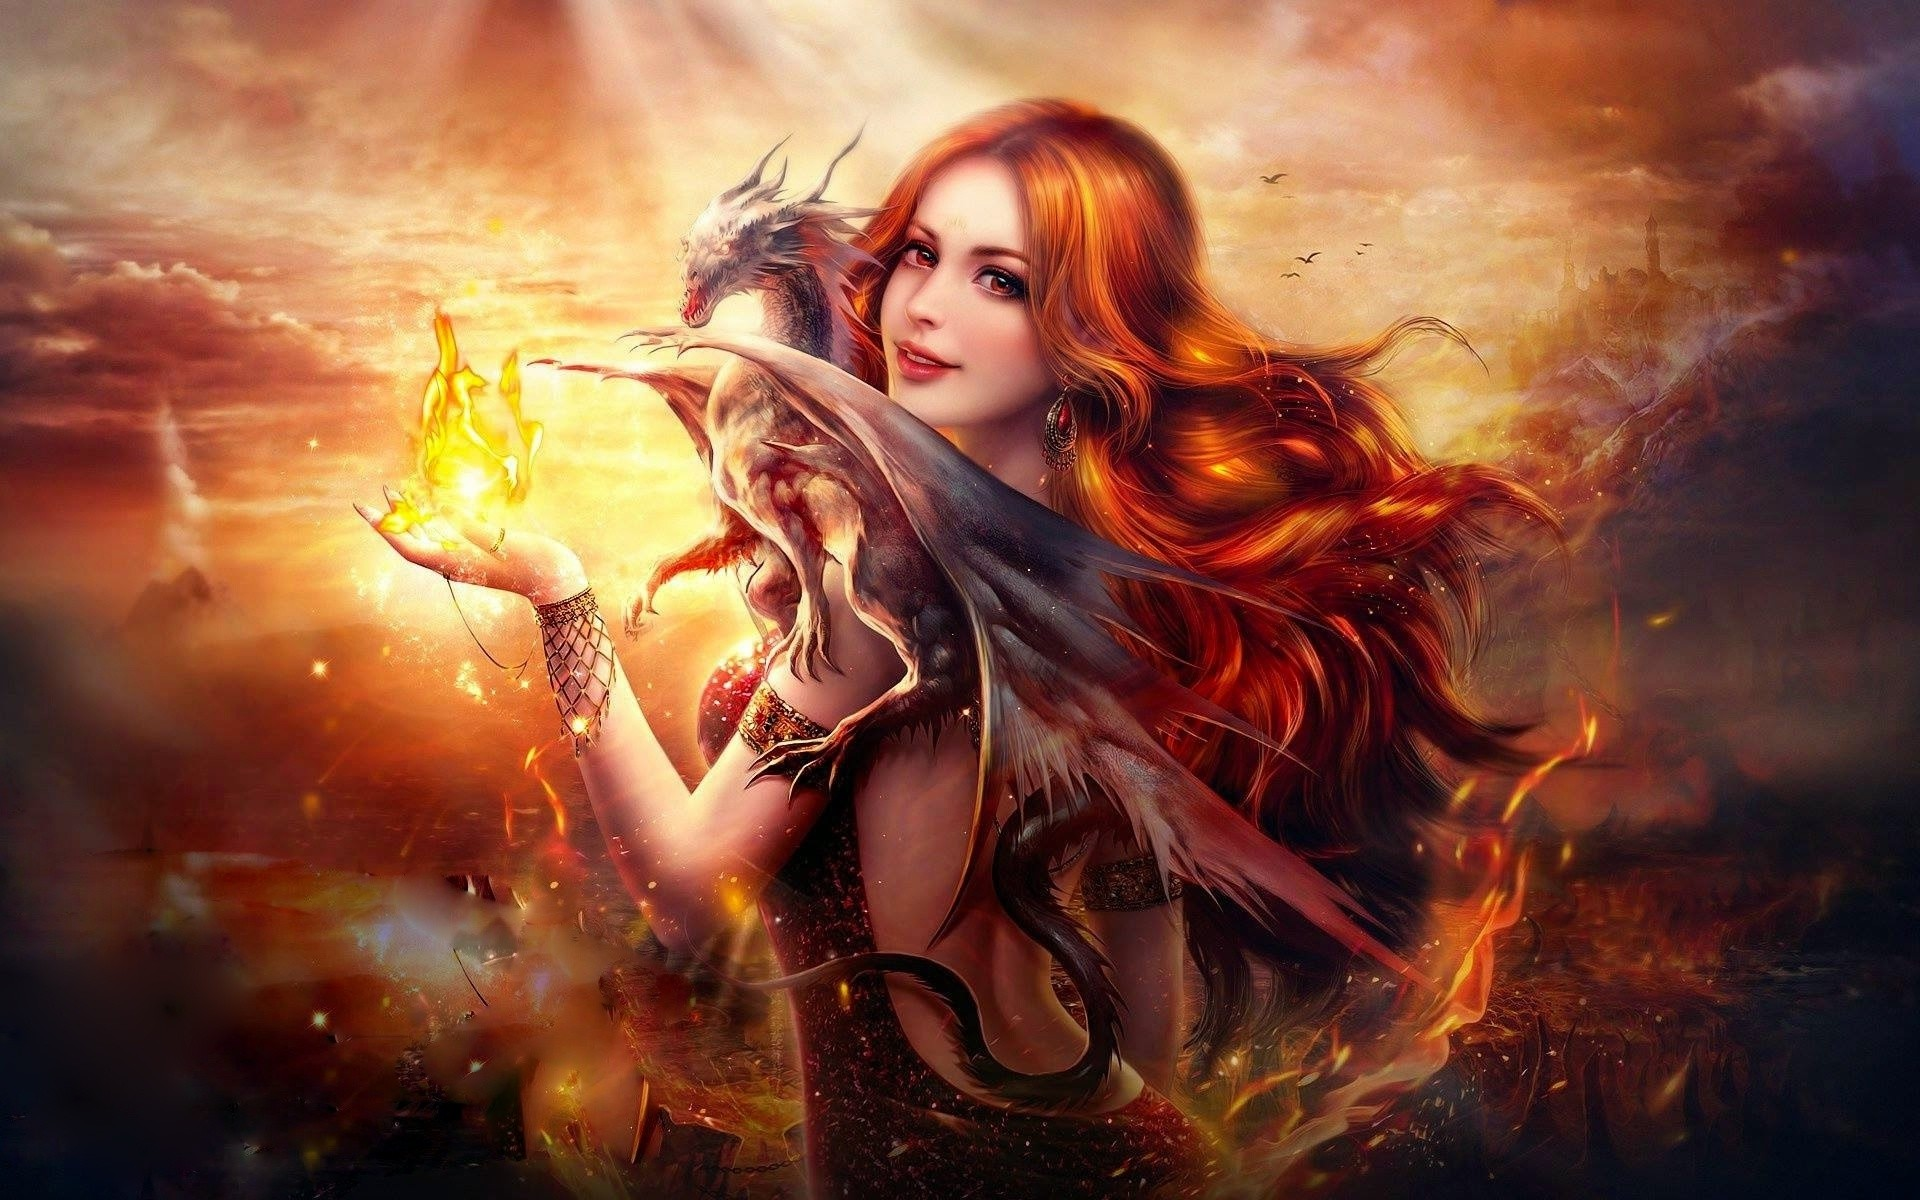 Game girls Wallpapers and Backgrounds 1440×900 Images Girls Wallpapers (49  Wallpapers) |